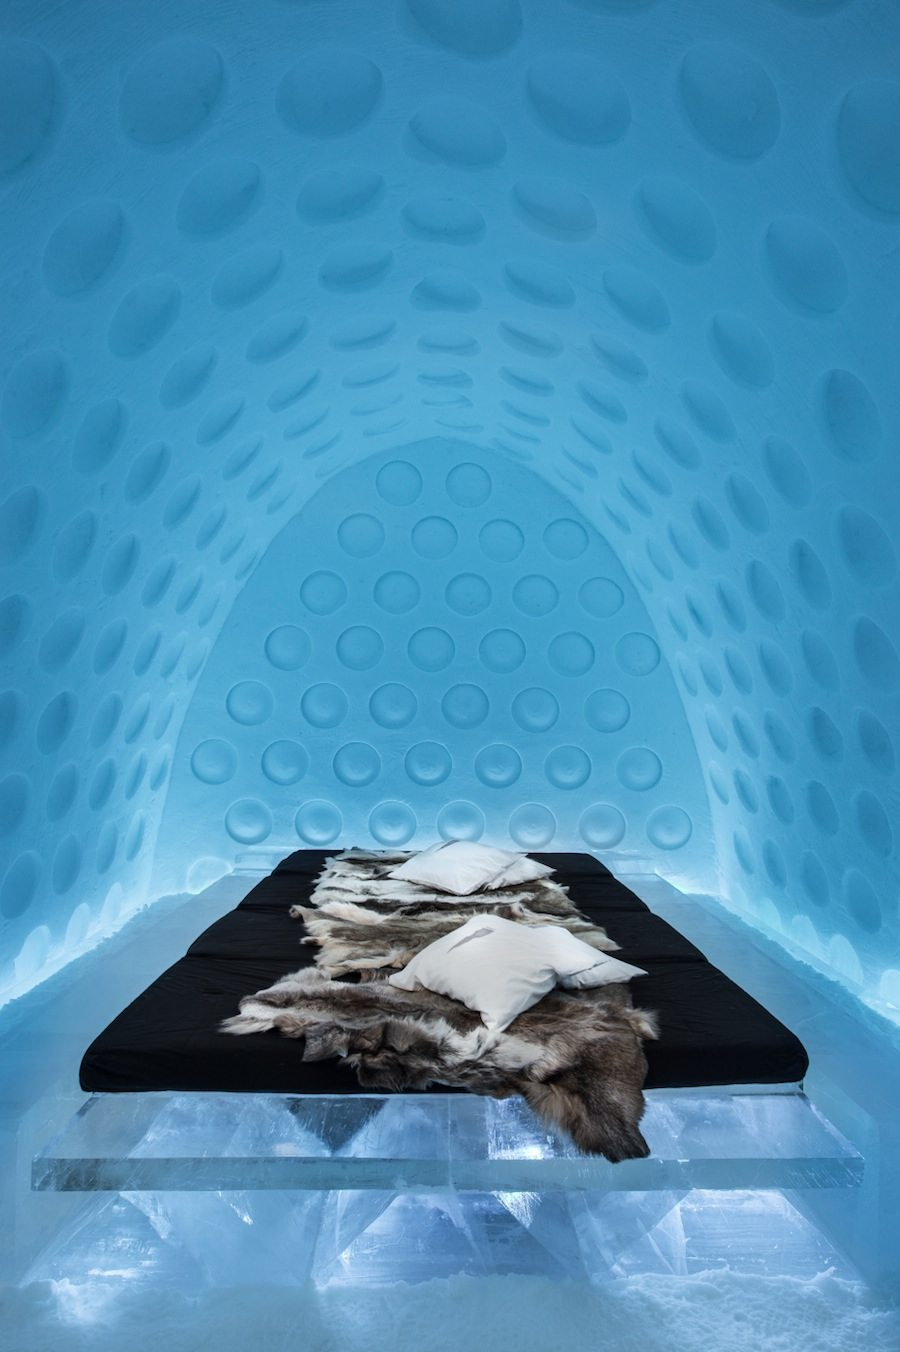 """Under the Arctic Skin"" suite. Design by Rob Harding and Timsam Harding. Photo by Asaf Kliger."